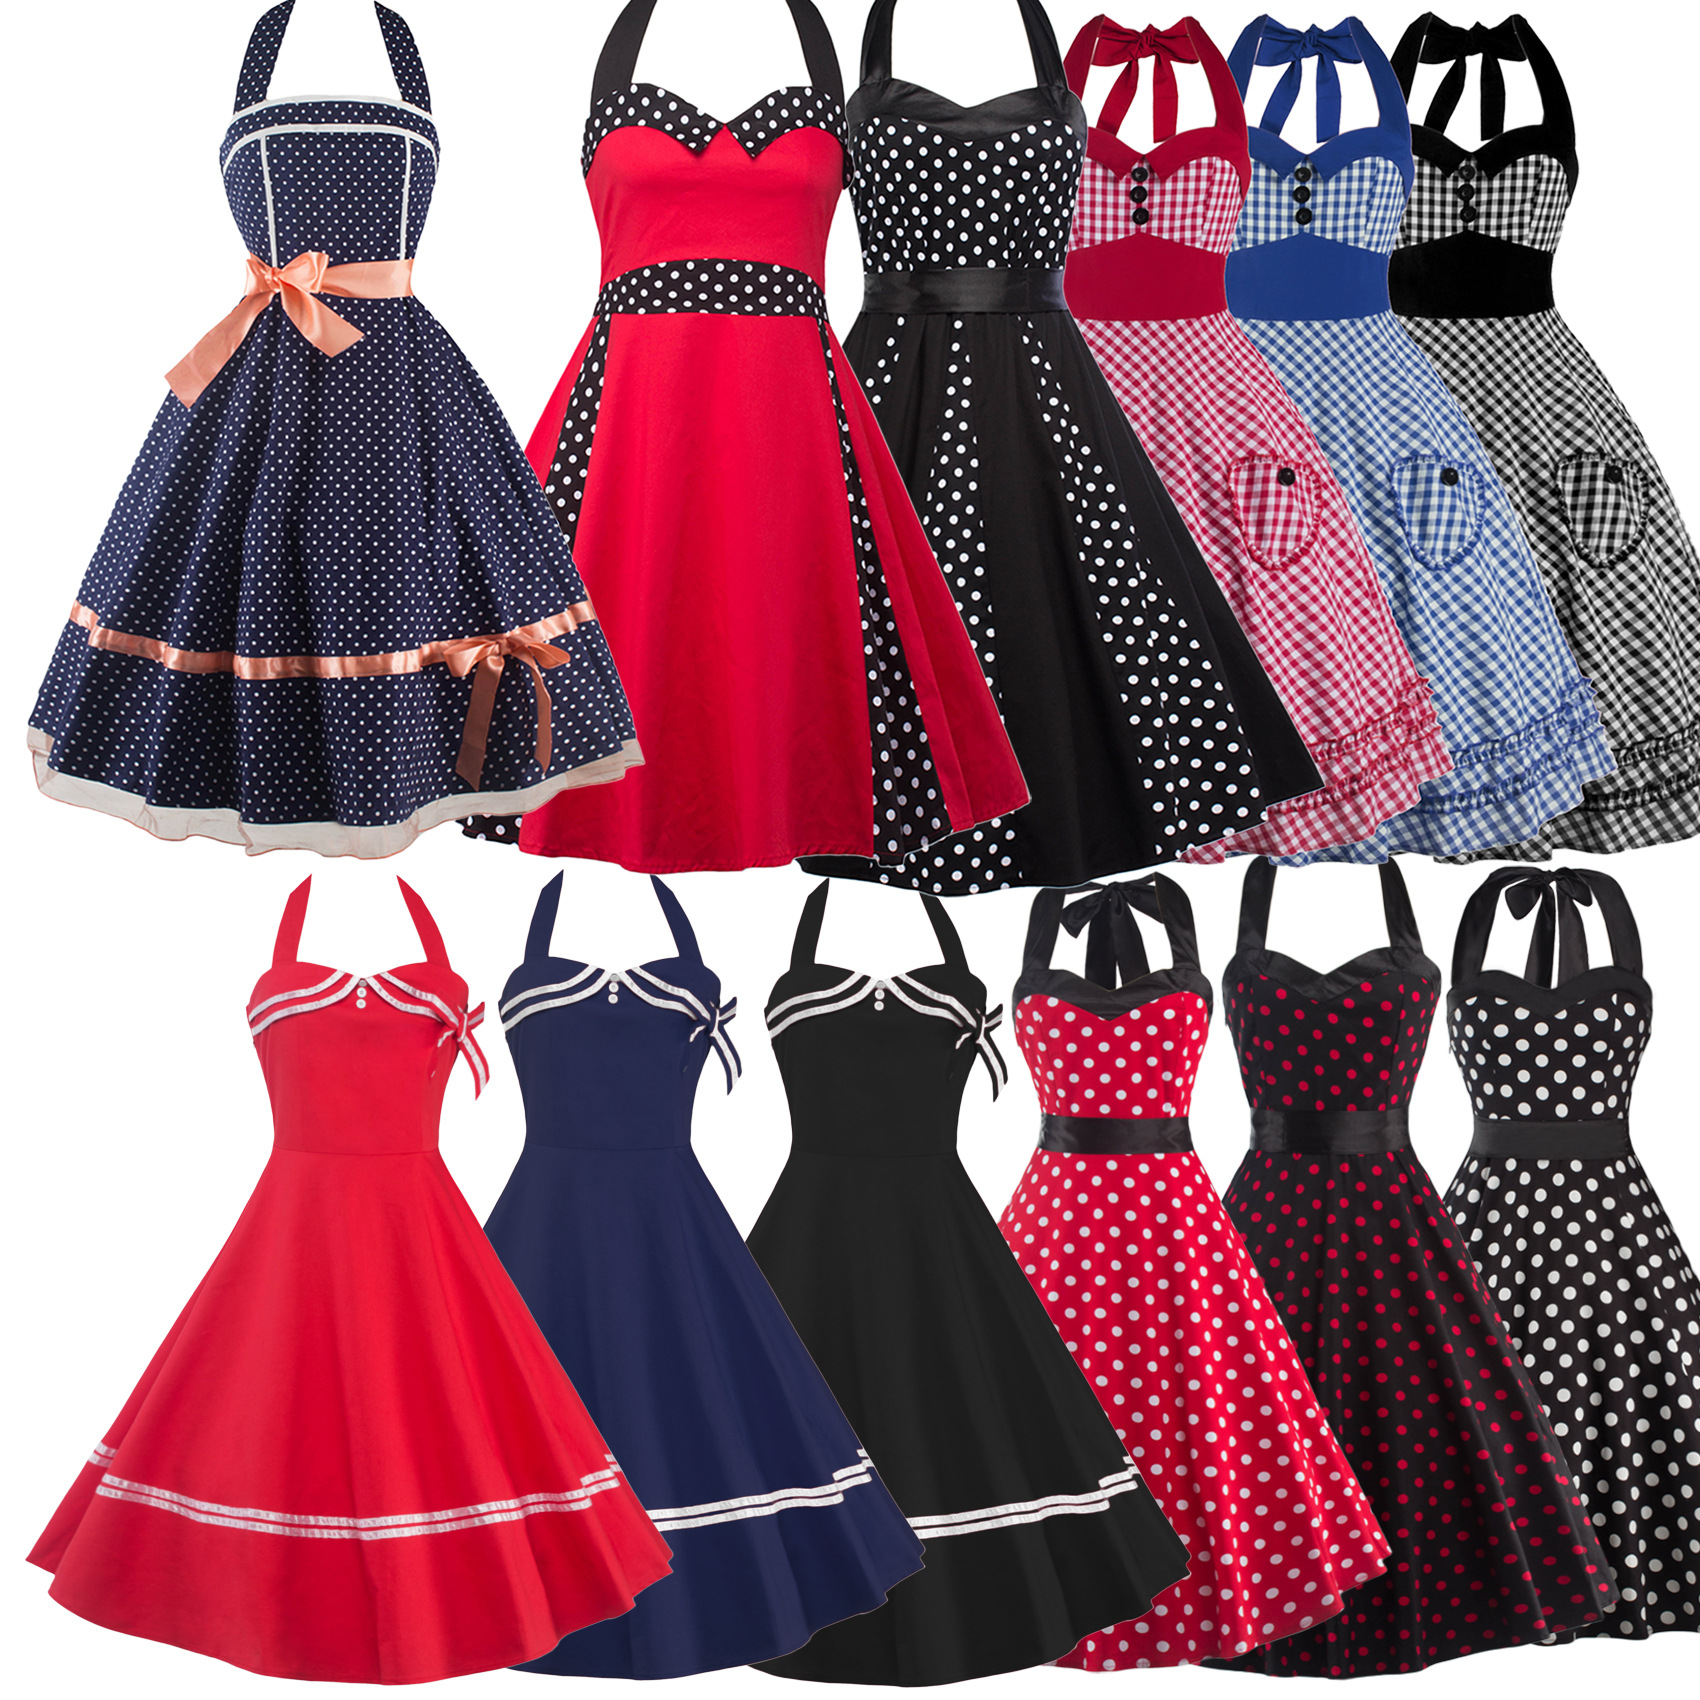 Women Dress Plus Size Summer Clothing 2017 Retro Swing Short Gown robe Pin up Dot Vintage 60s 50s Rockabilly Dresses